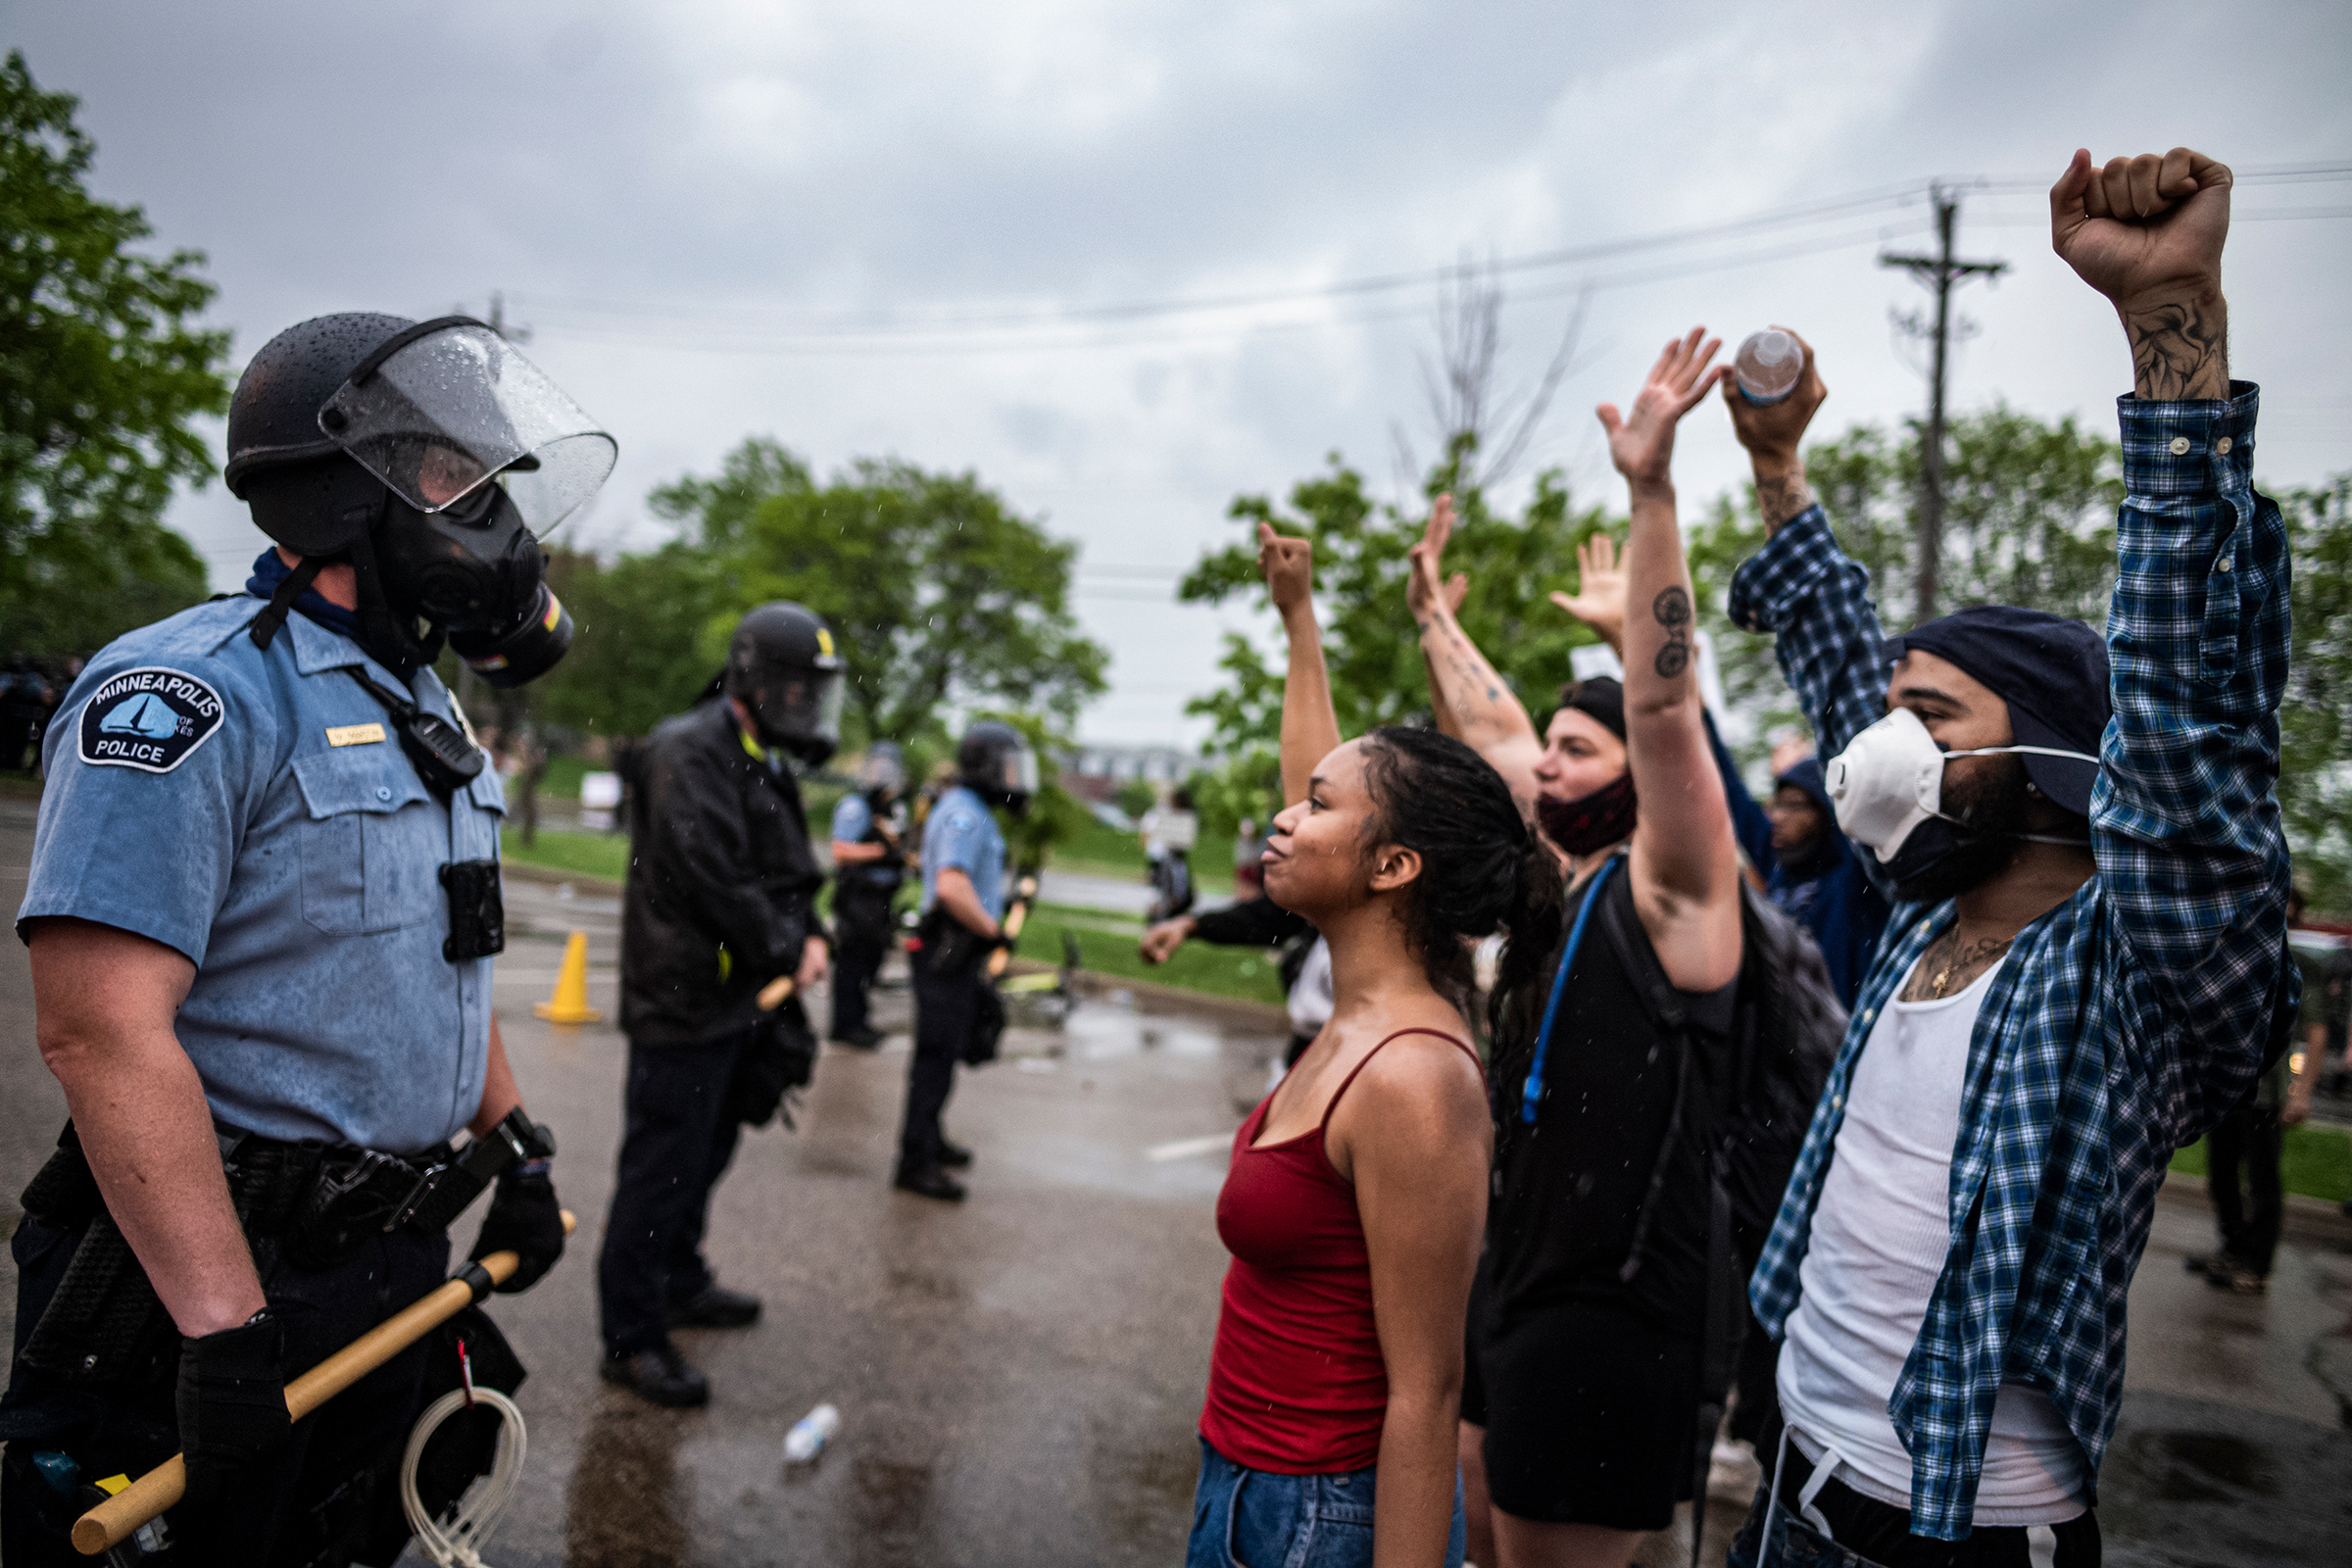 Protesters face off with police in Minneapolis on May 26 after video footage from a day earlier surfaced showing a white officer kneeling on the neck of a handcuffed black man—identified as George Floyd by an attorney for his family—despite saying he could not breathe. Floyd was later pronounced dead at Hennepin County Medical Center. Four officers involved in the arrest were fired.